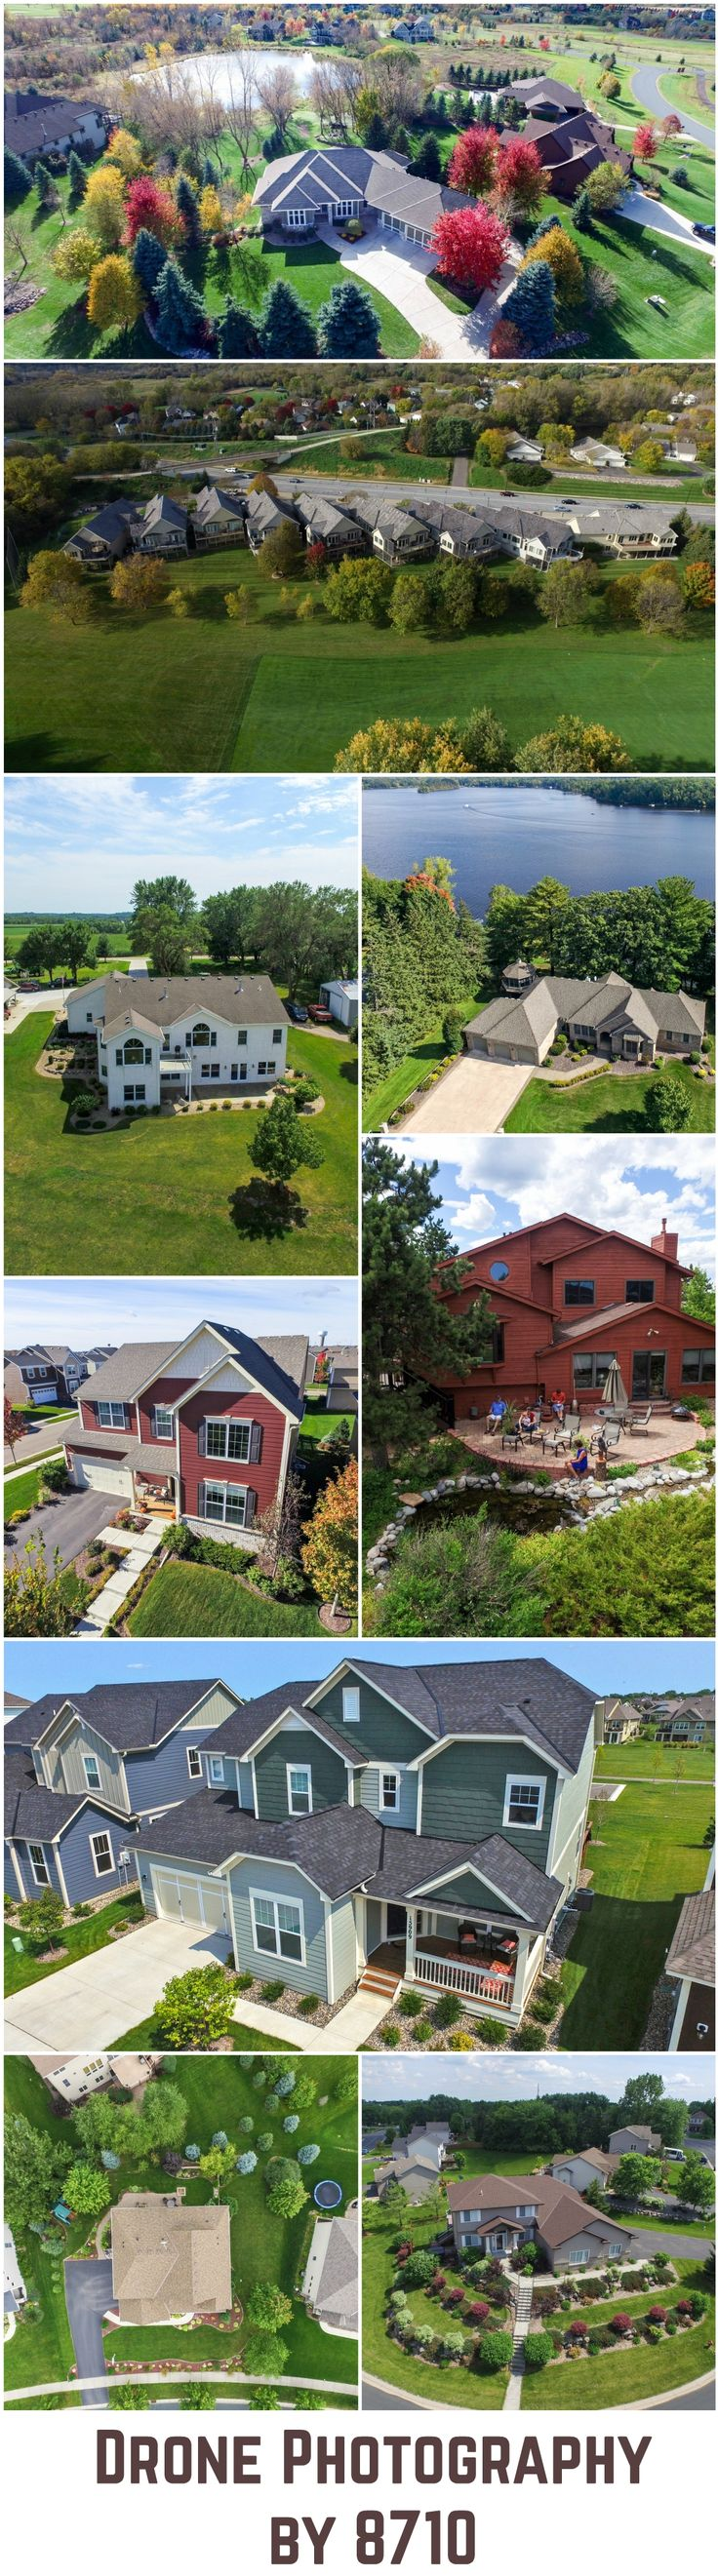 Looking for aerial drone photography services for your real estate property? Call us at 651.764.8710 for drone photography in Minneapolis.